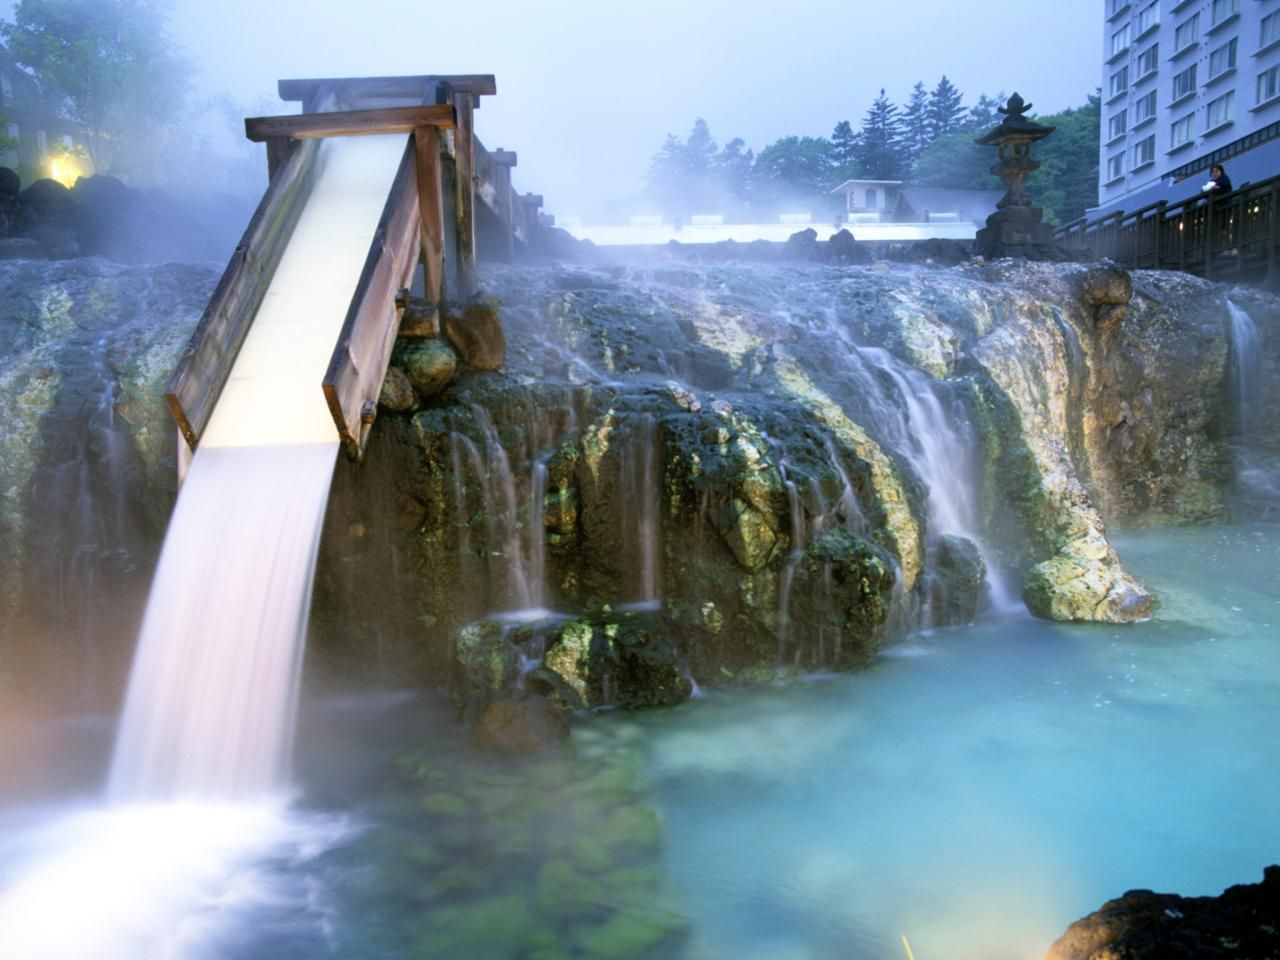 Each Year Nearly 3 Million Visitors Take In The Waters At Kusatsu Onsen